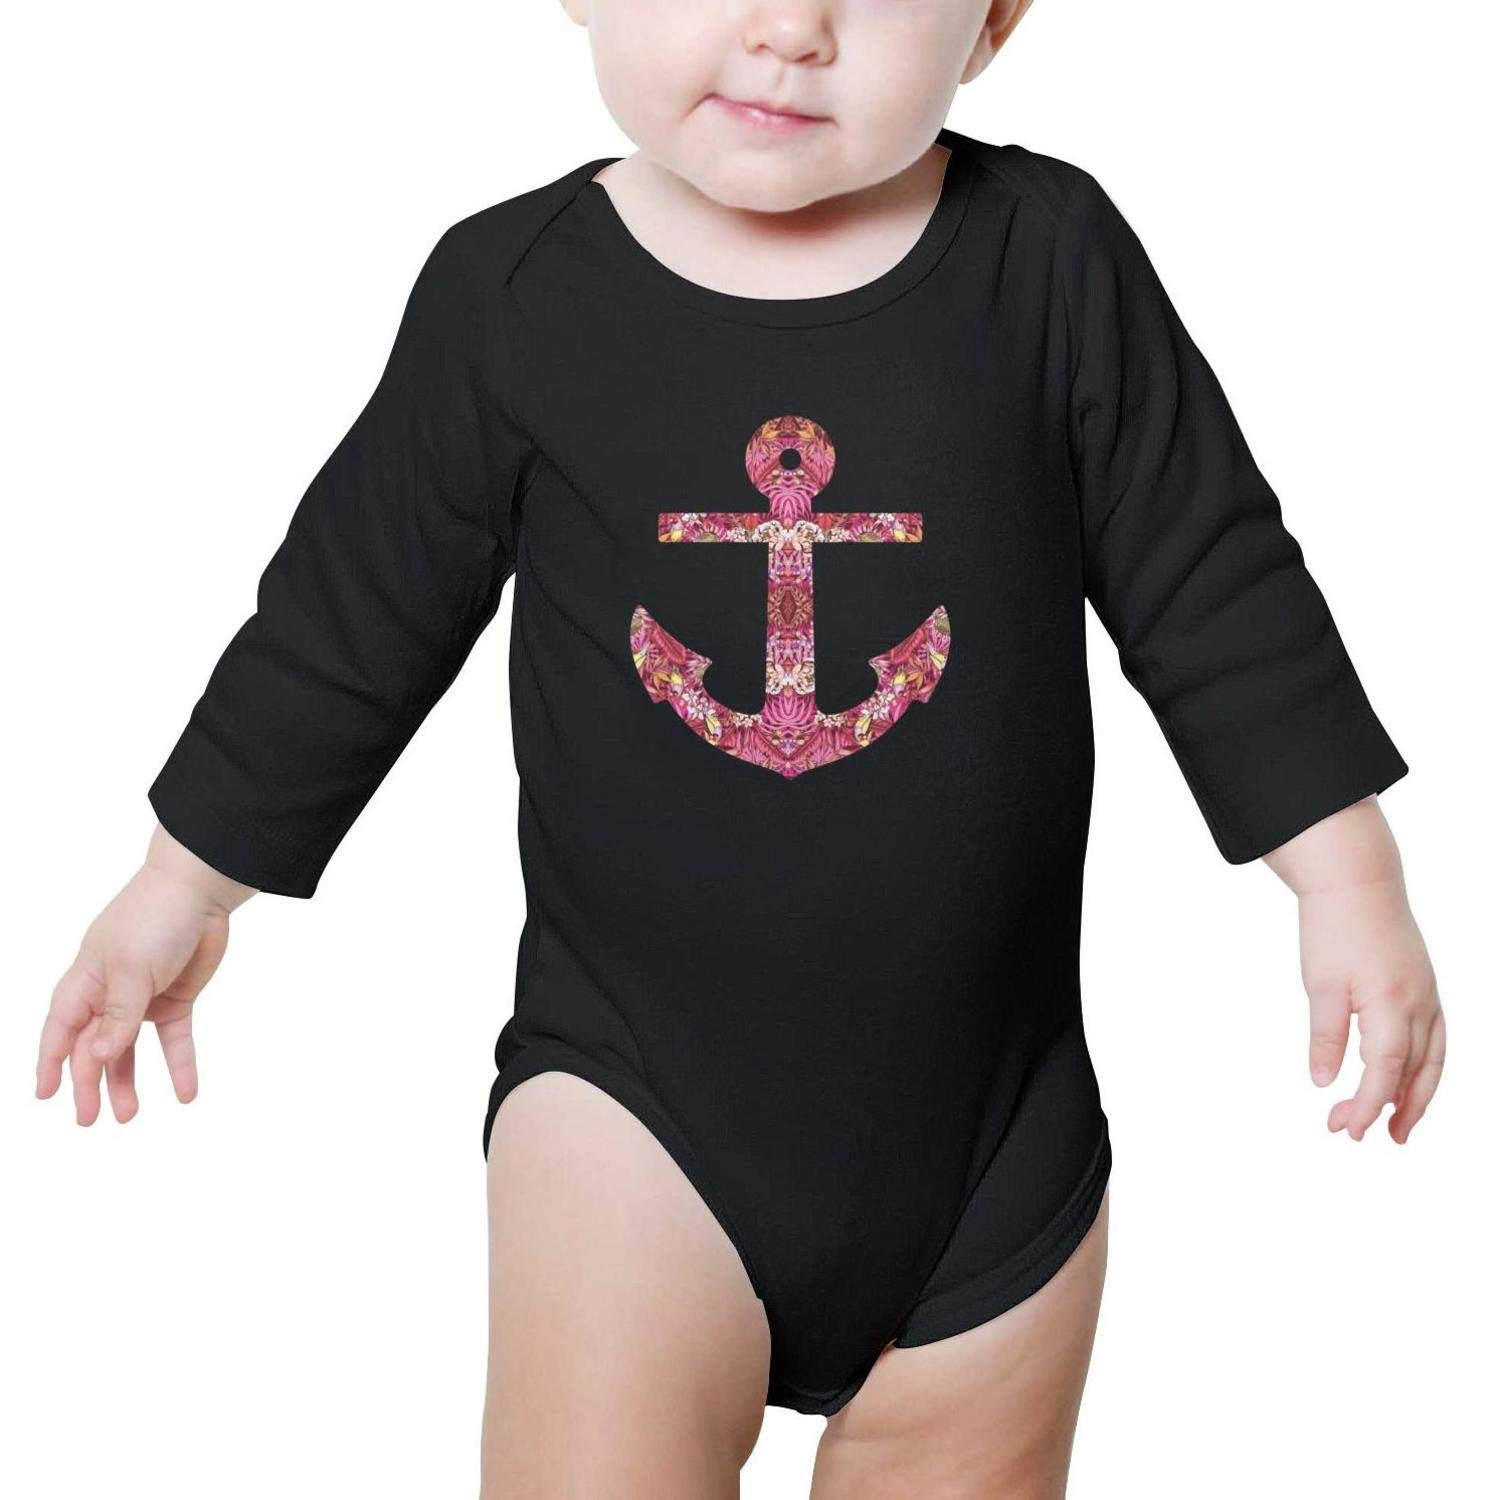 Anchor Print in Tropical Floral Baby Boys Girls Cool Baby Onesies